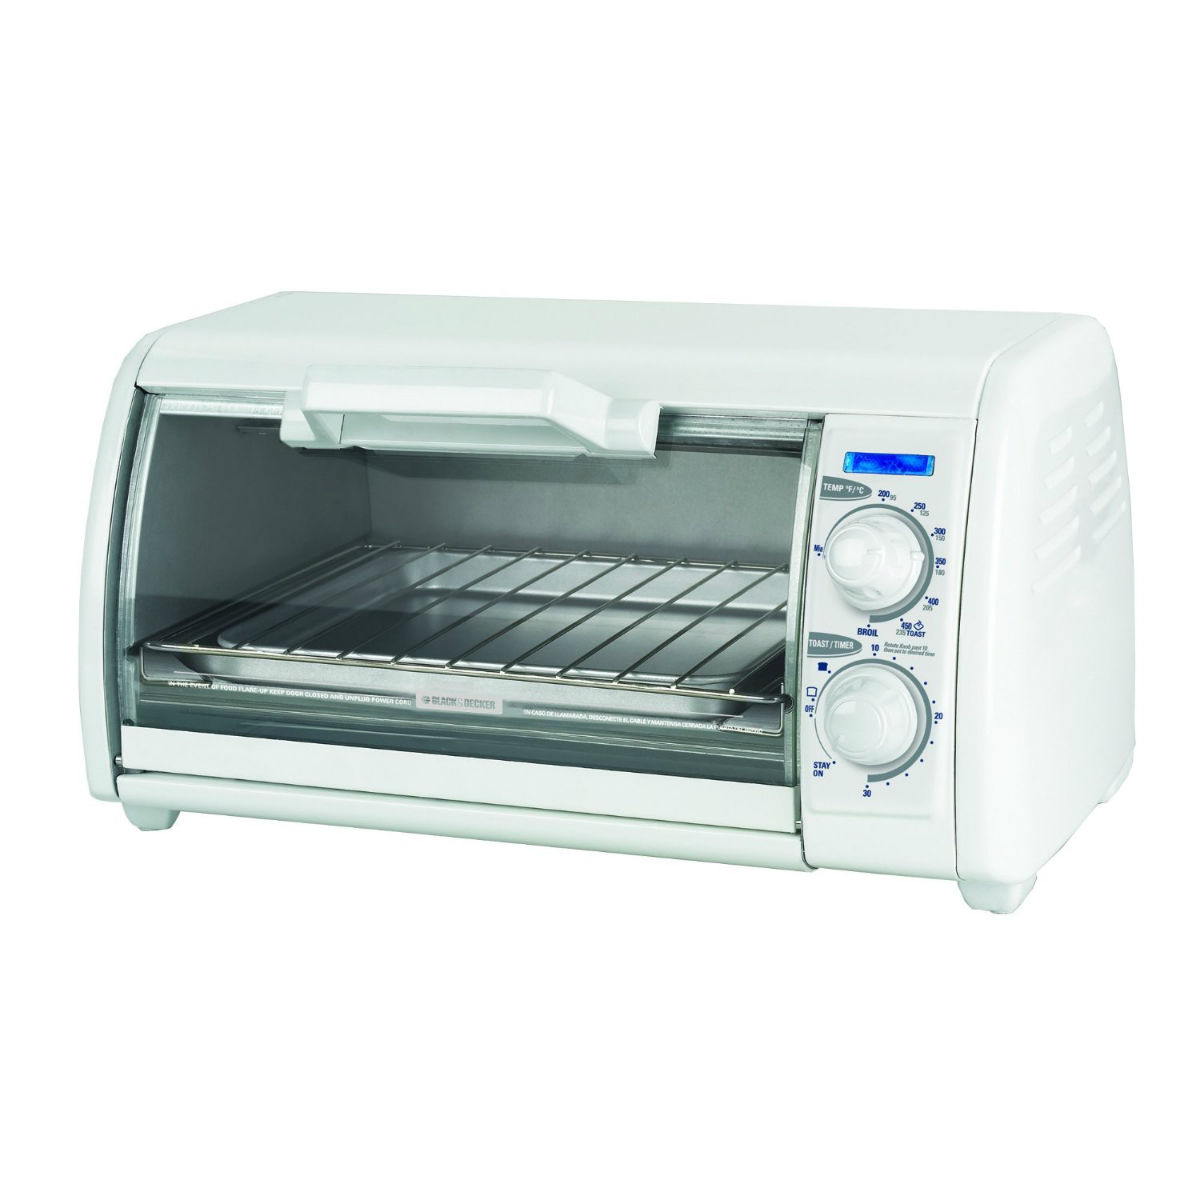 Black Amp Decker Toaster Oven Tro420 For Sale In Jamaica